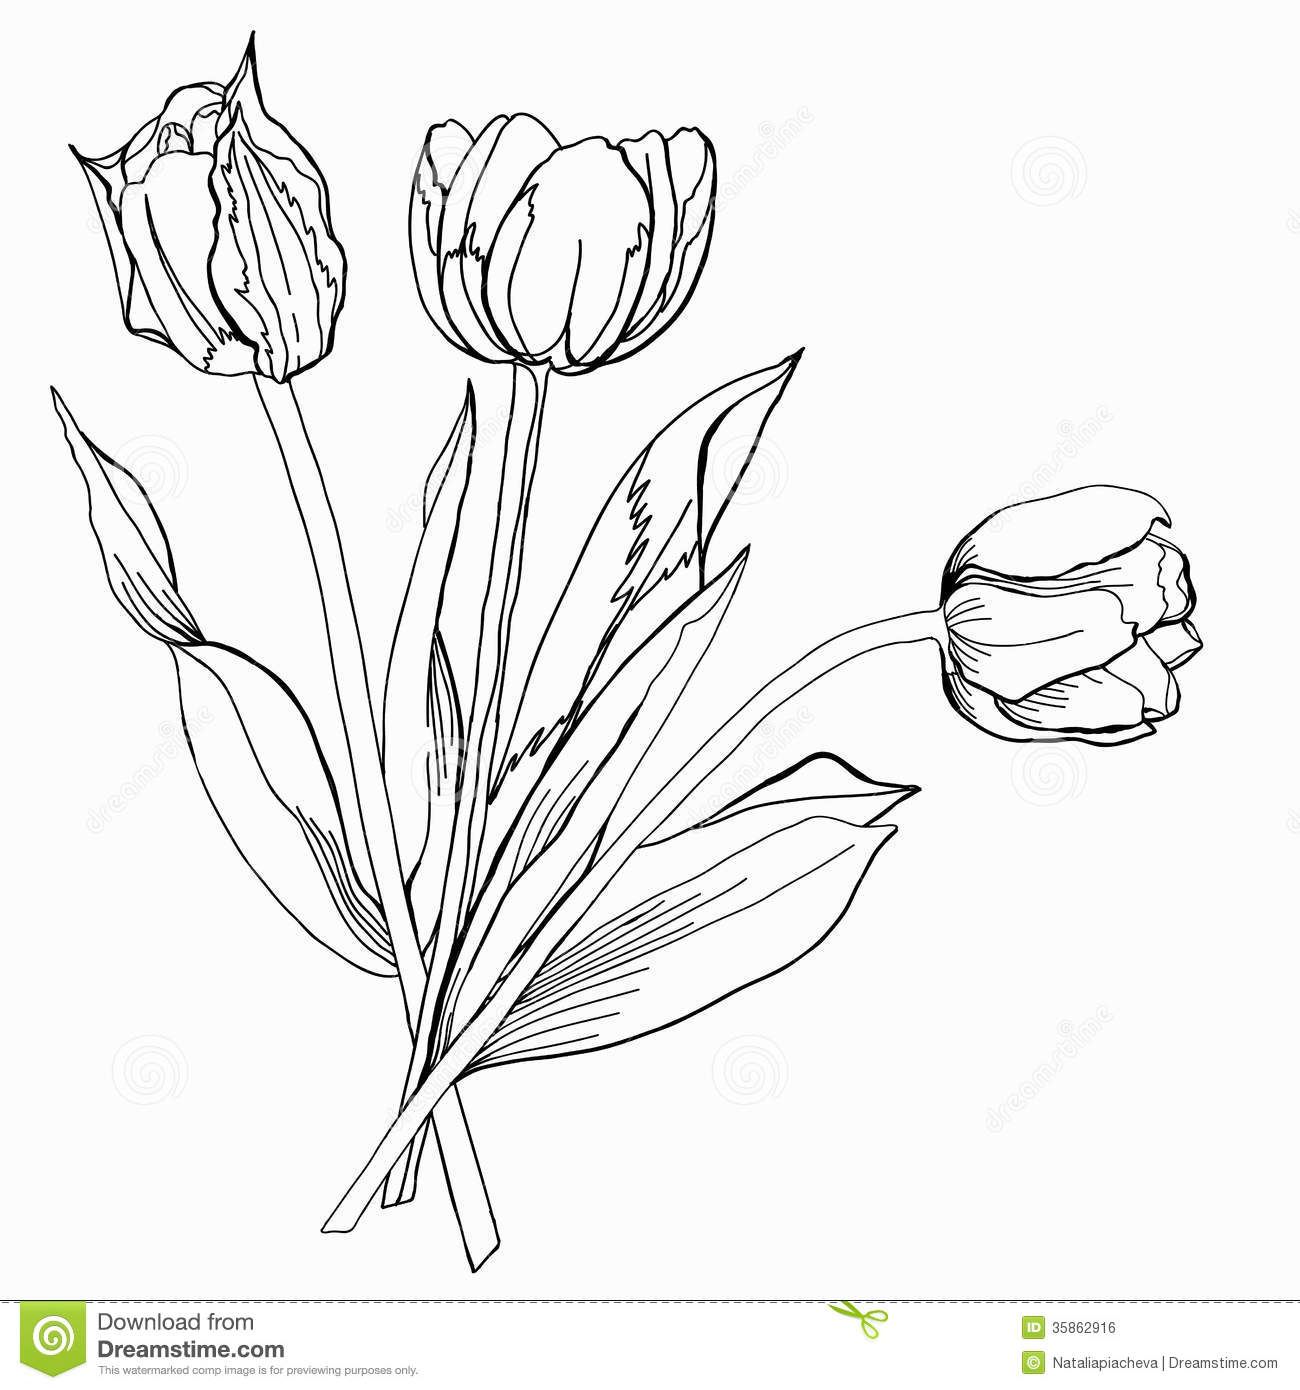 Rose vase coloring pages